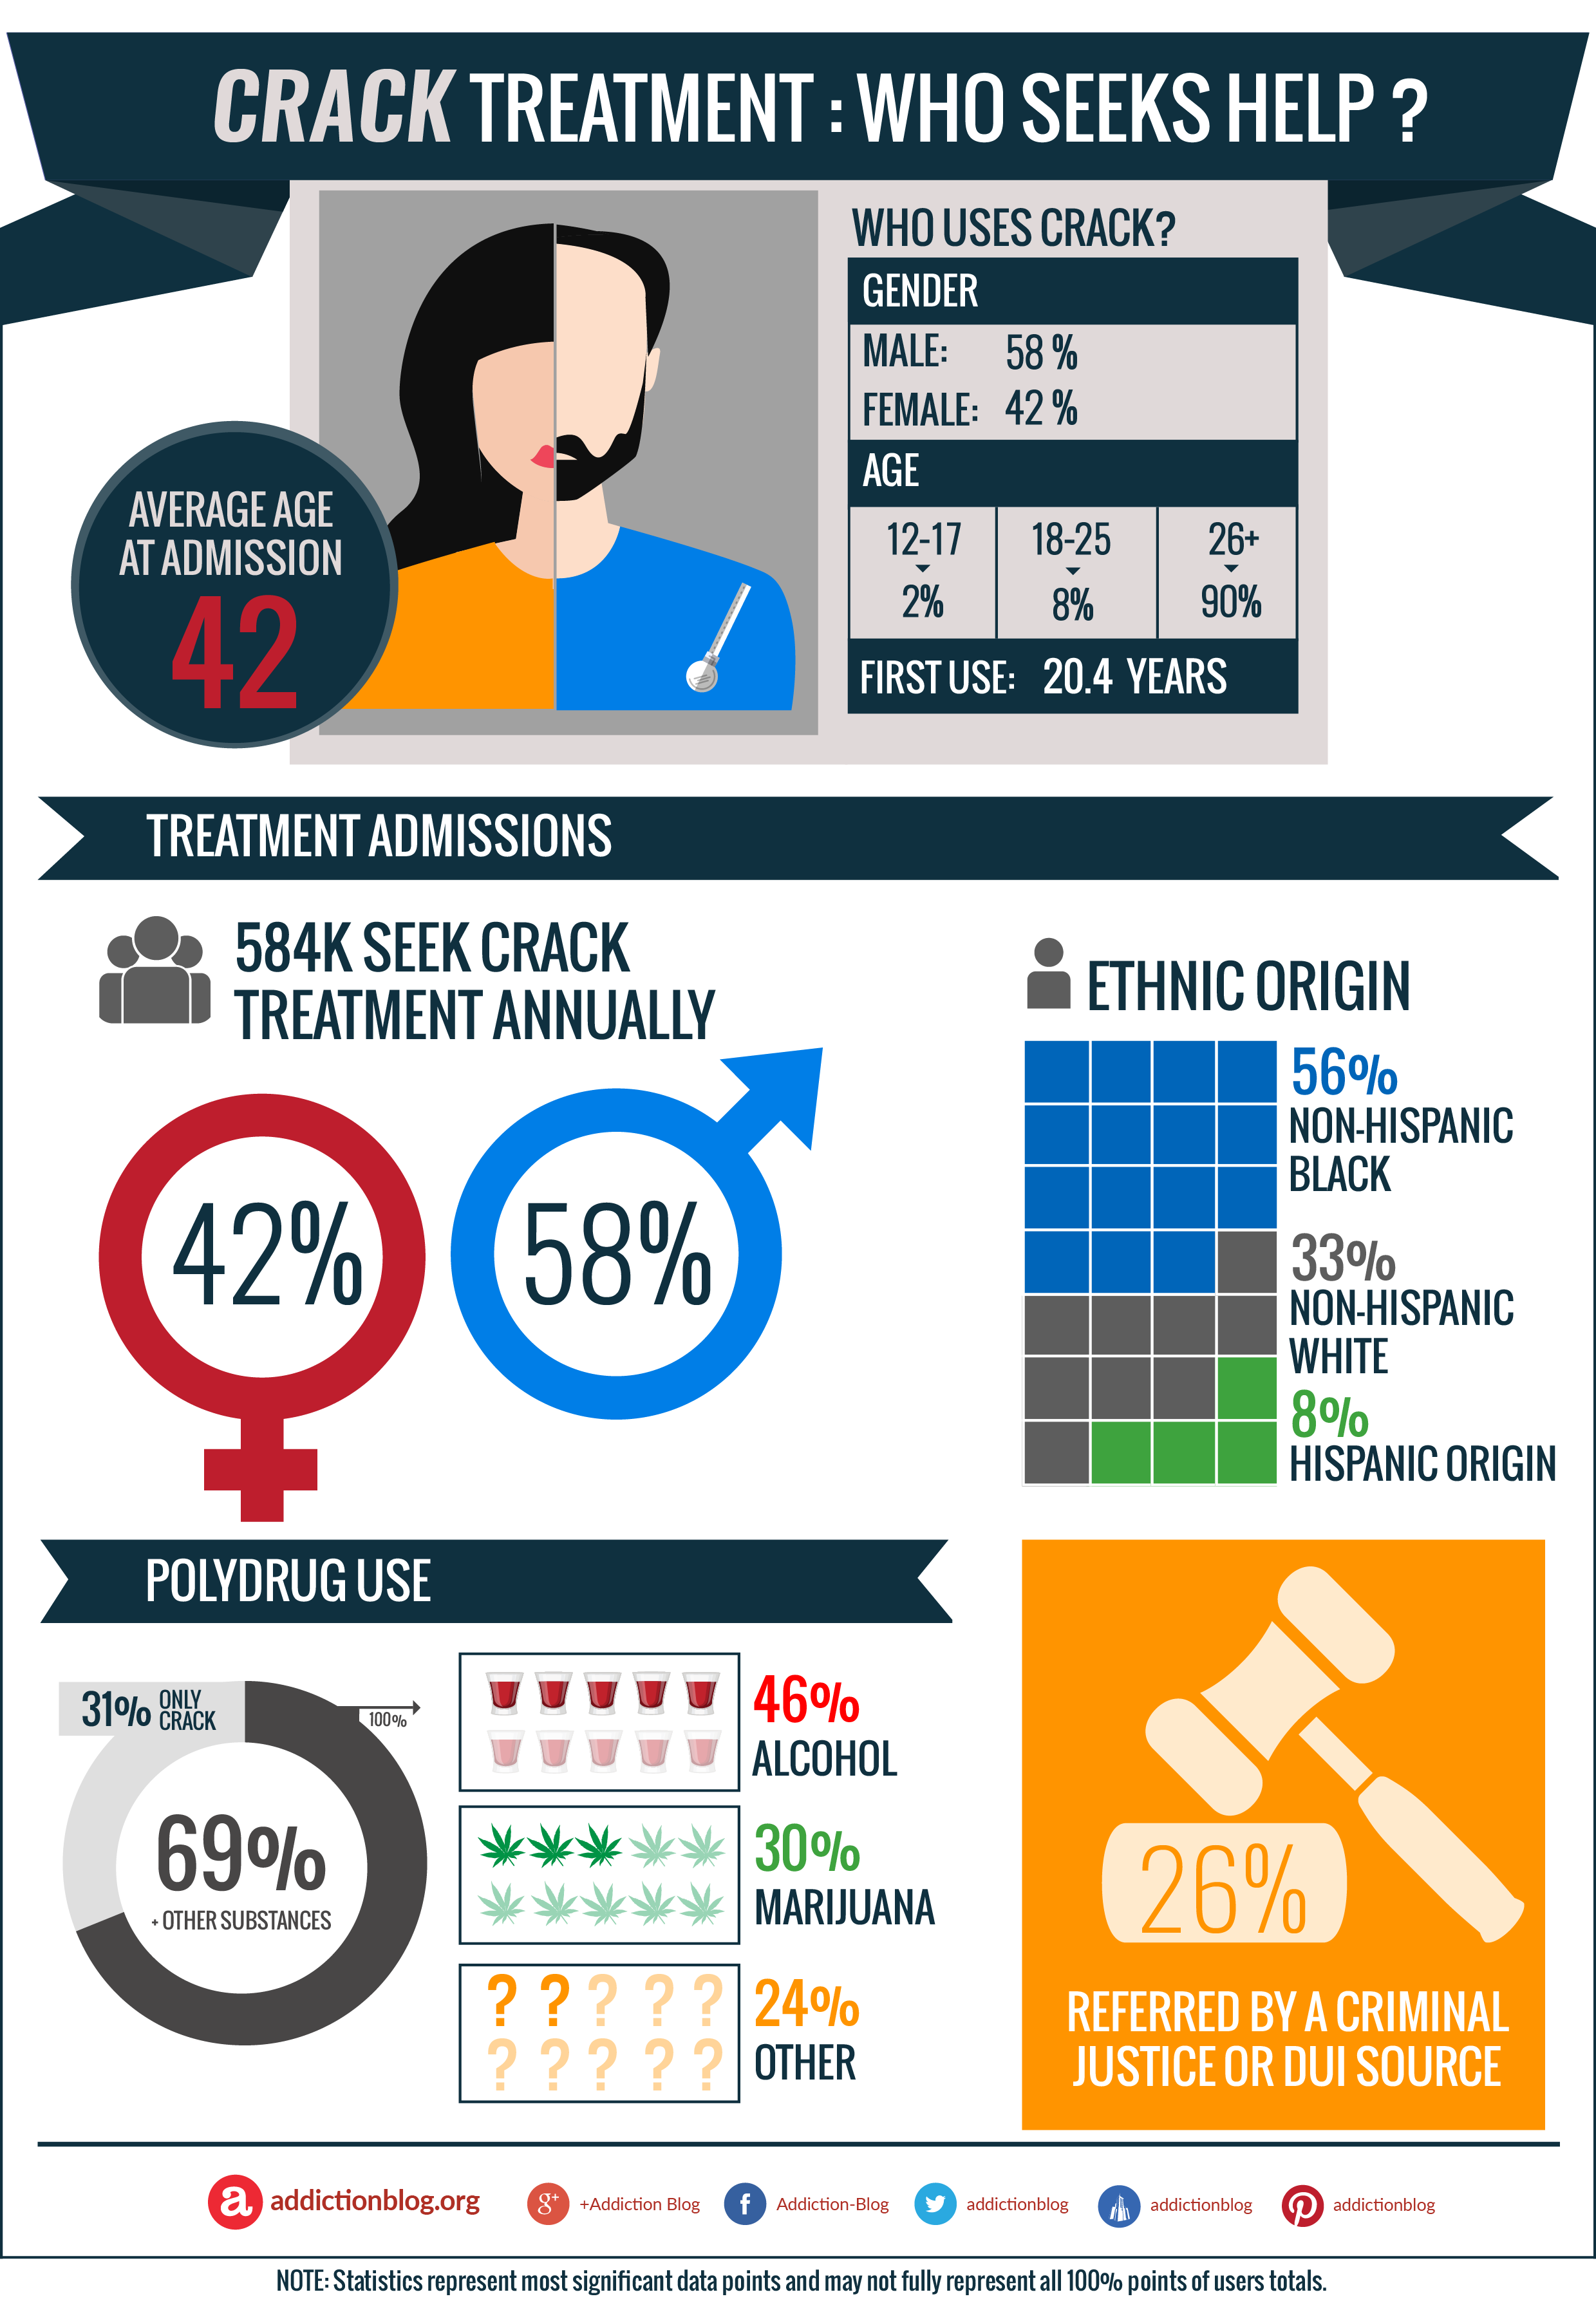 Crack cocaine addiction treatment: Who seeks help? (INFOGRAPHIC)